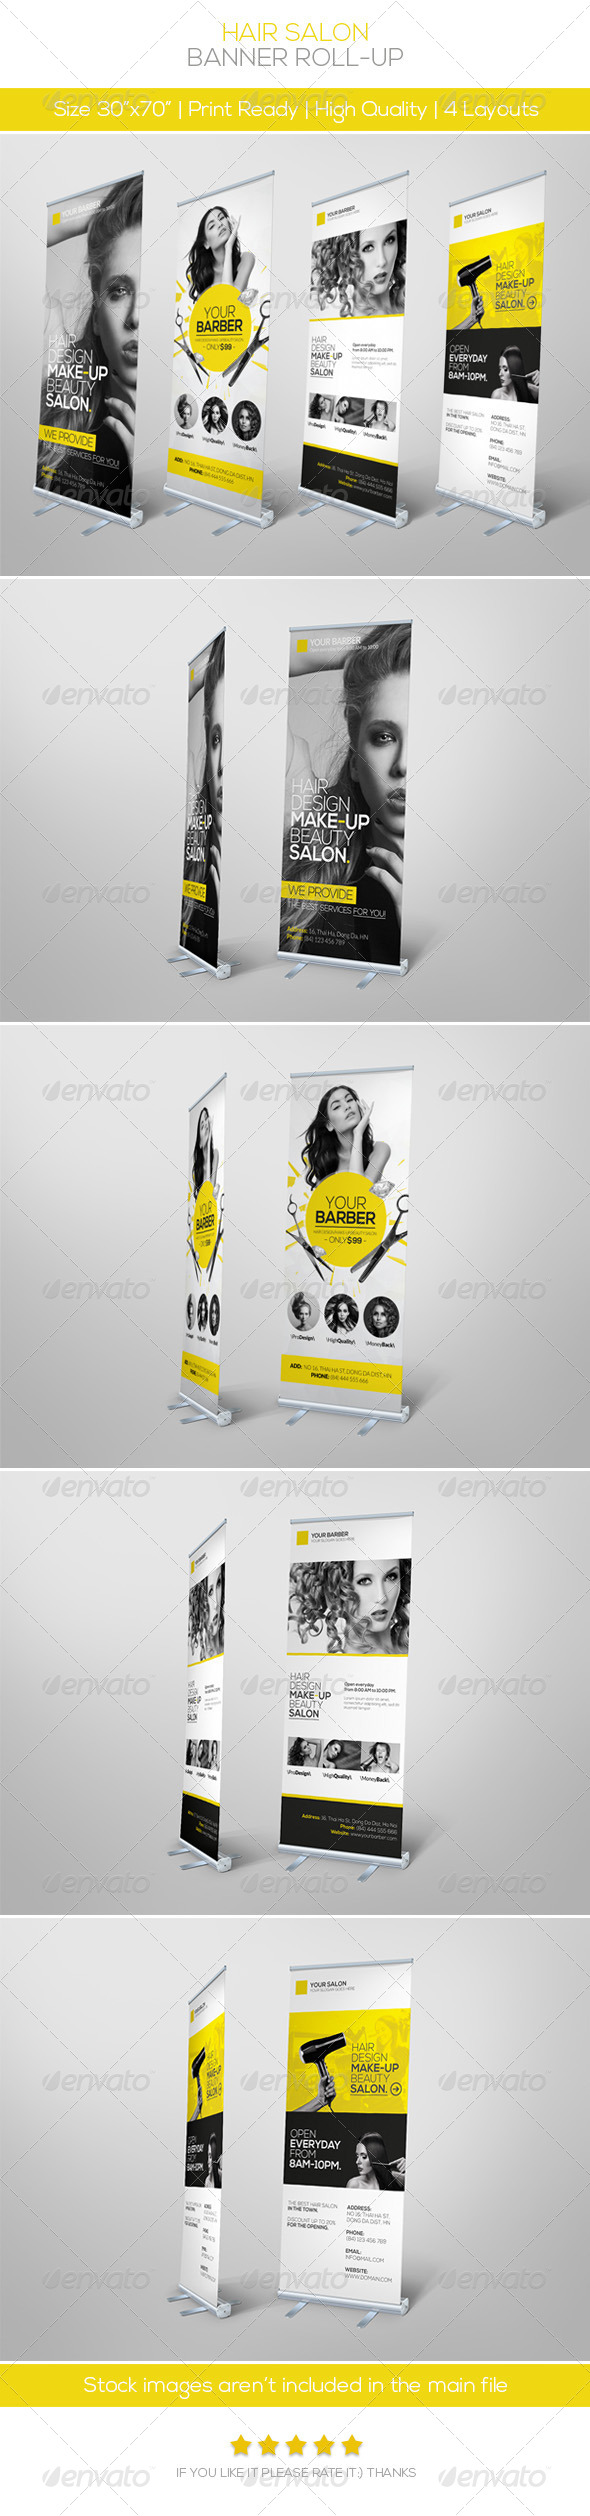 Premium Hair Salon Roll-up Banner